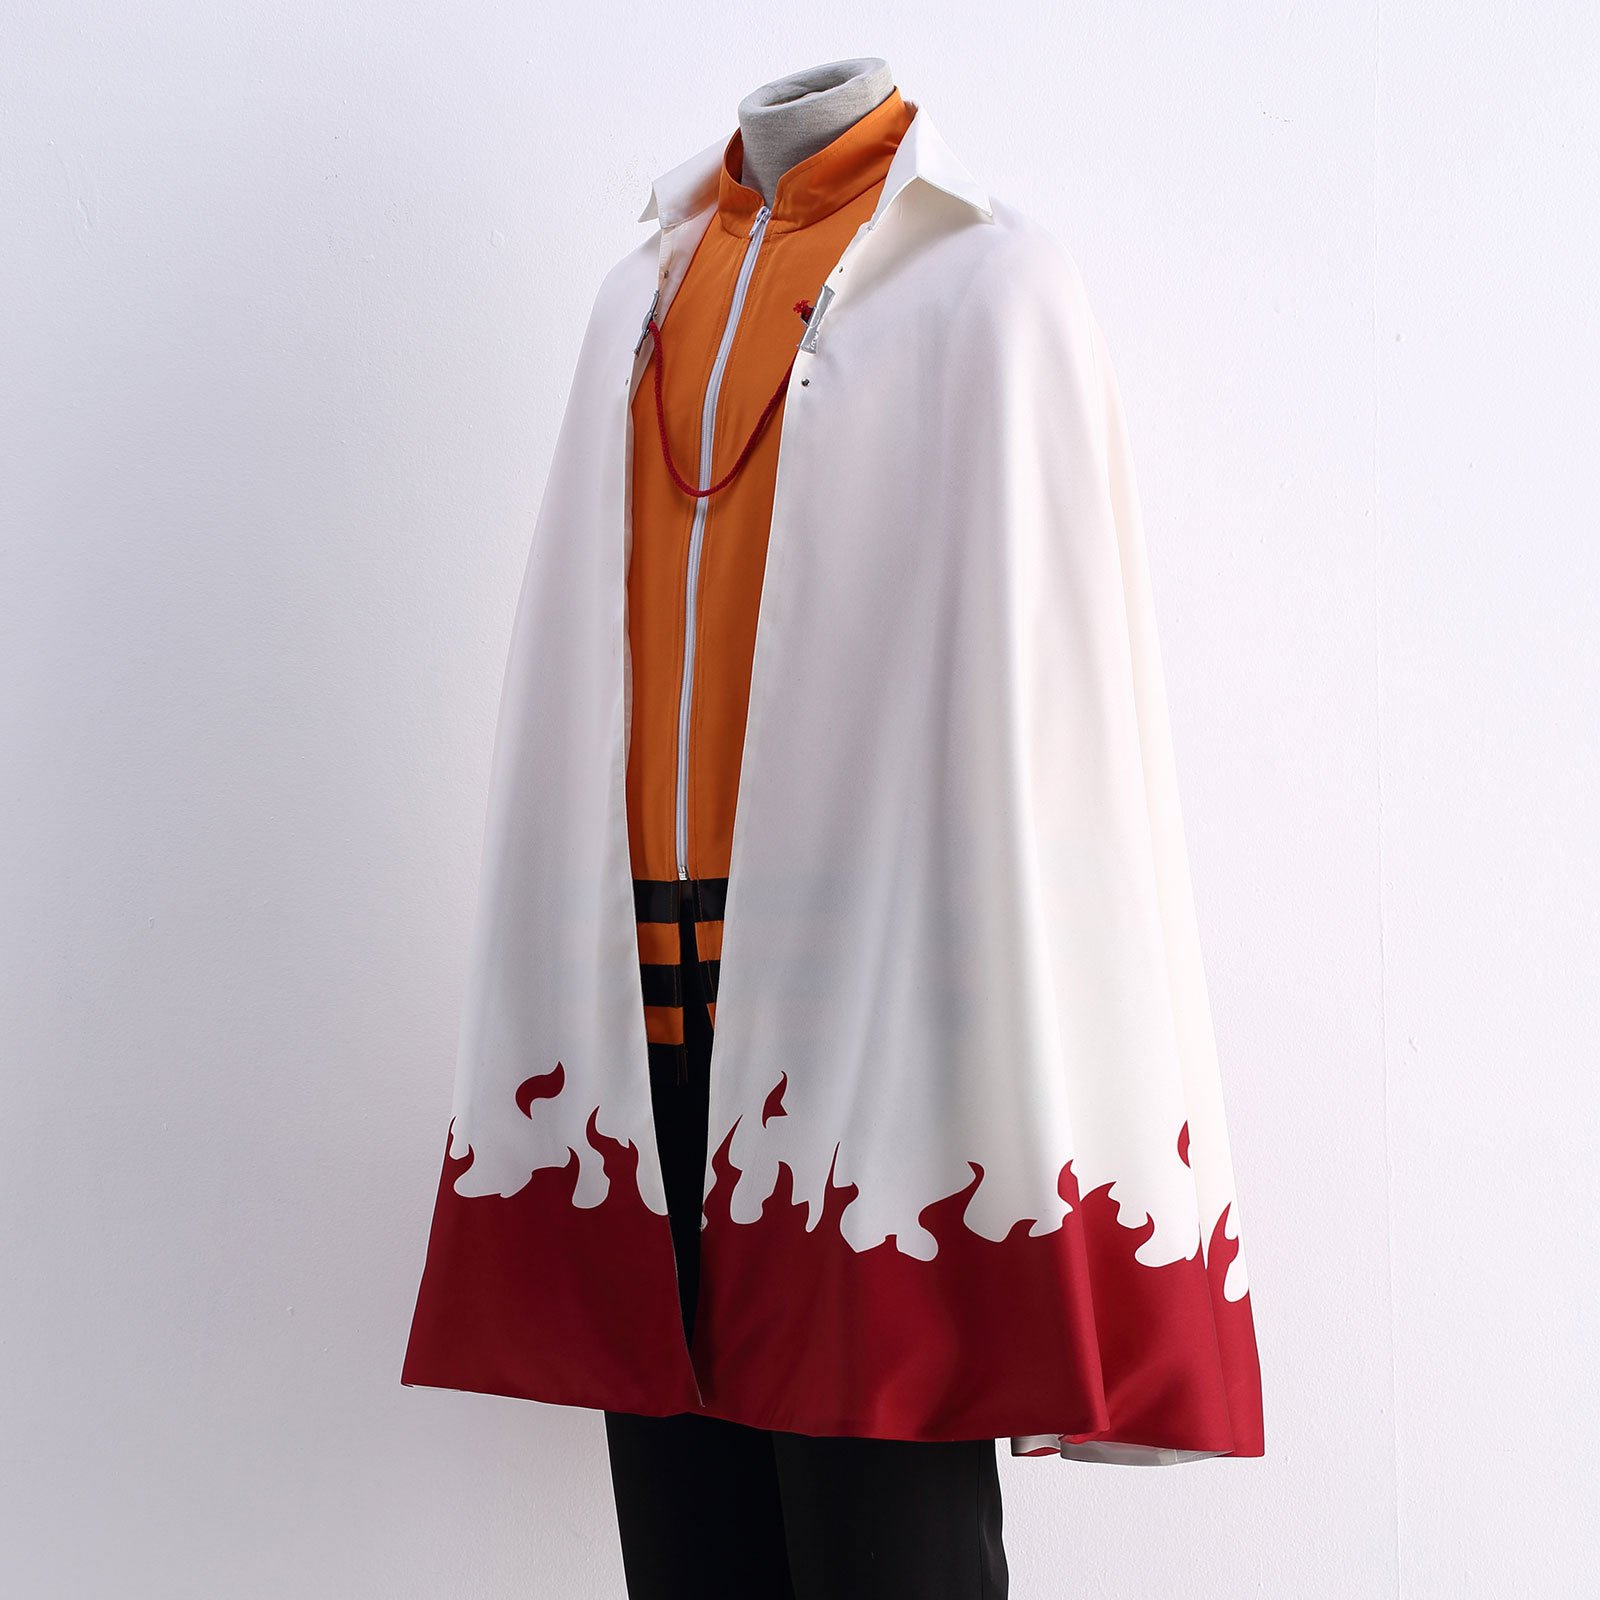 OURCOSPLAY US Size Men's Uzumaki Cloak 7th Hokage Cloak Boruto Cosplay Costume (Men US XL) by OURCOSPLAY (Image #3)